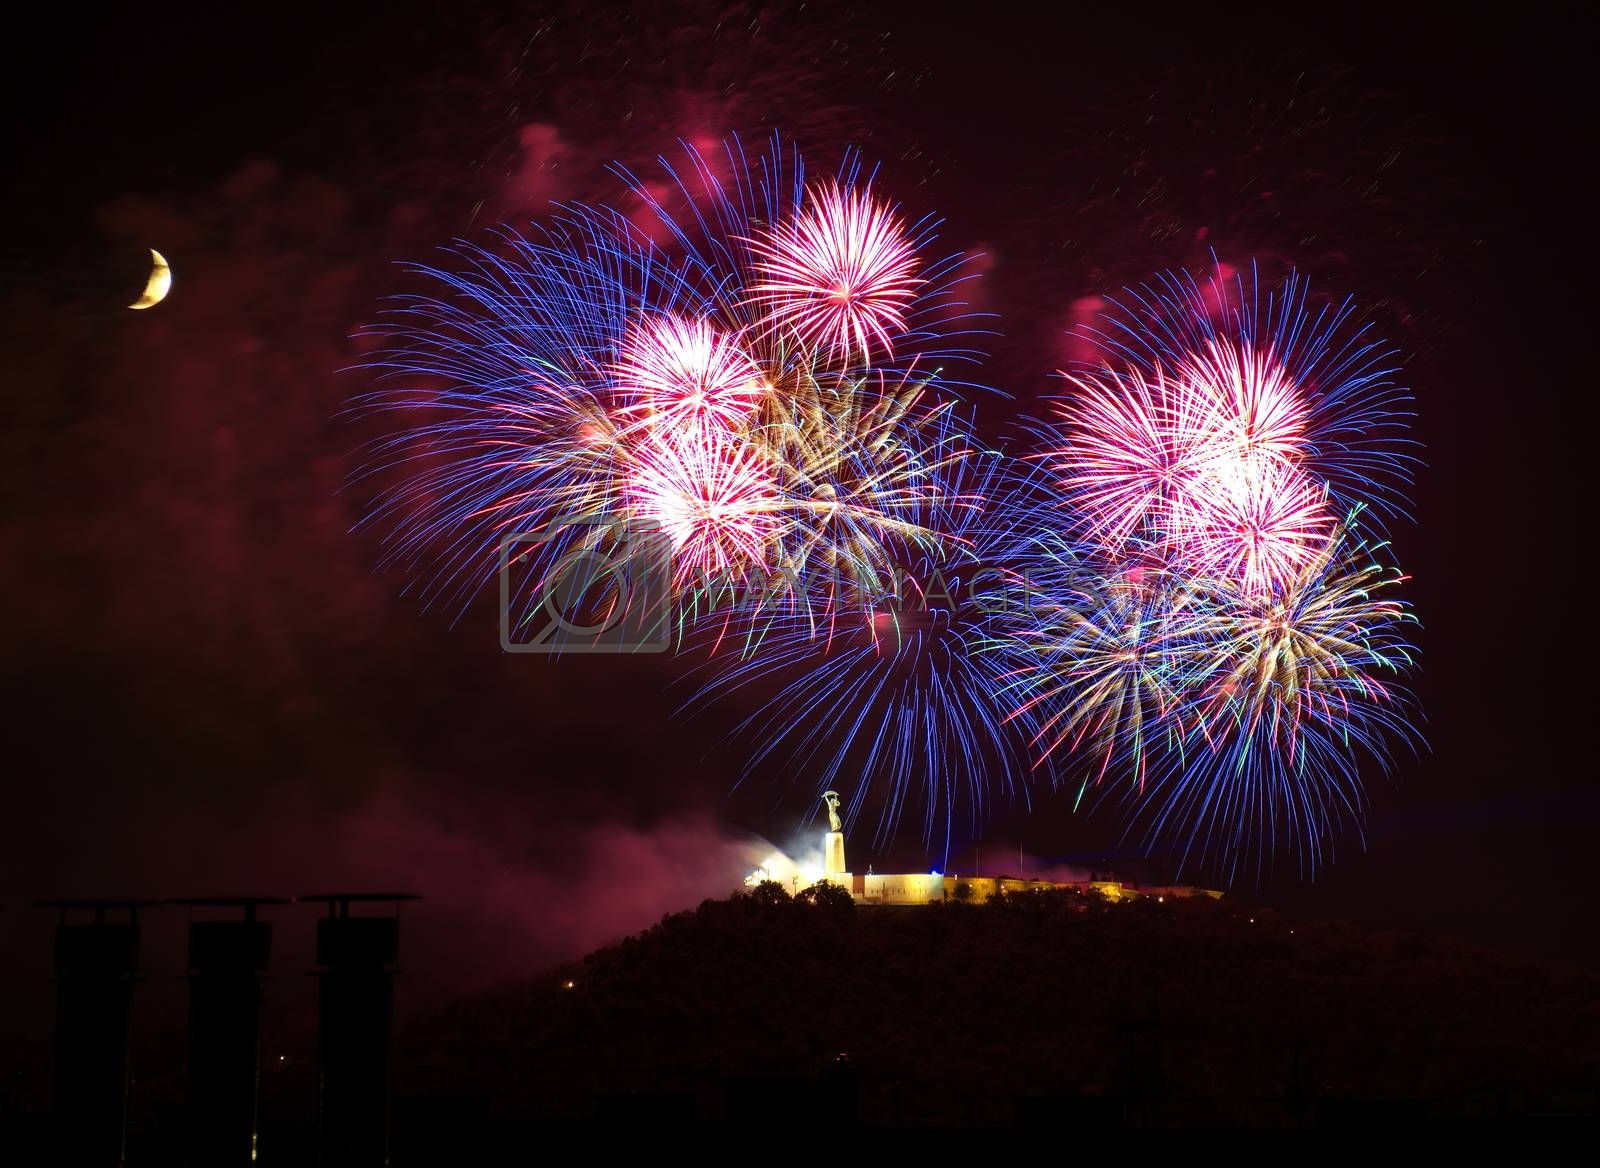 Royalty free image of Fireworks over Liberty statue in Budapest, Hungary by anderm